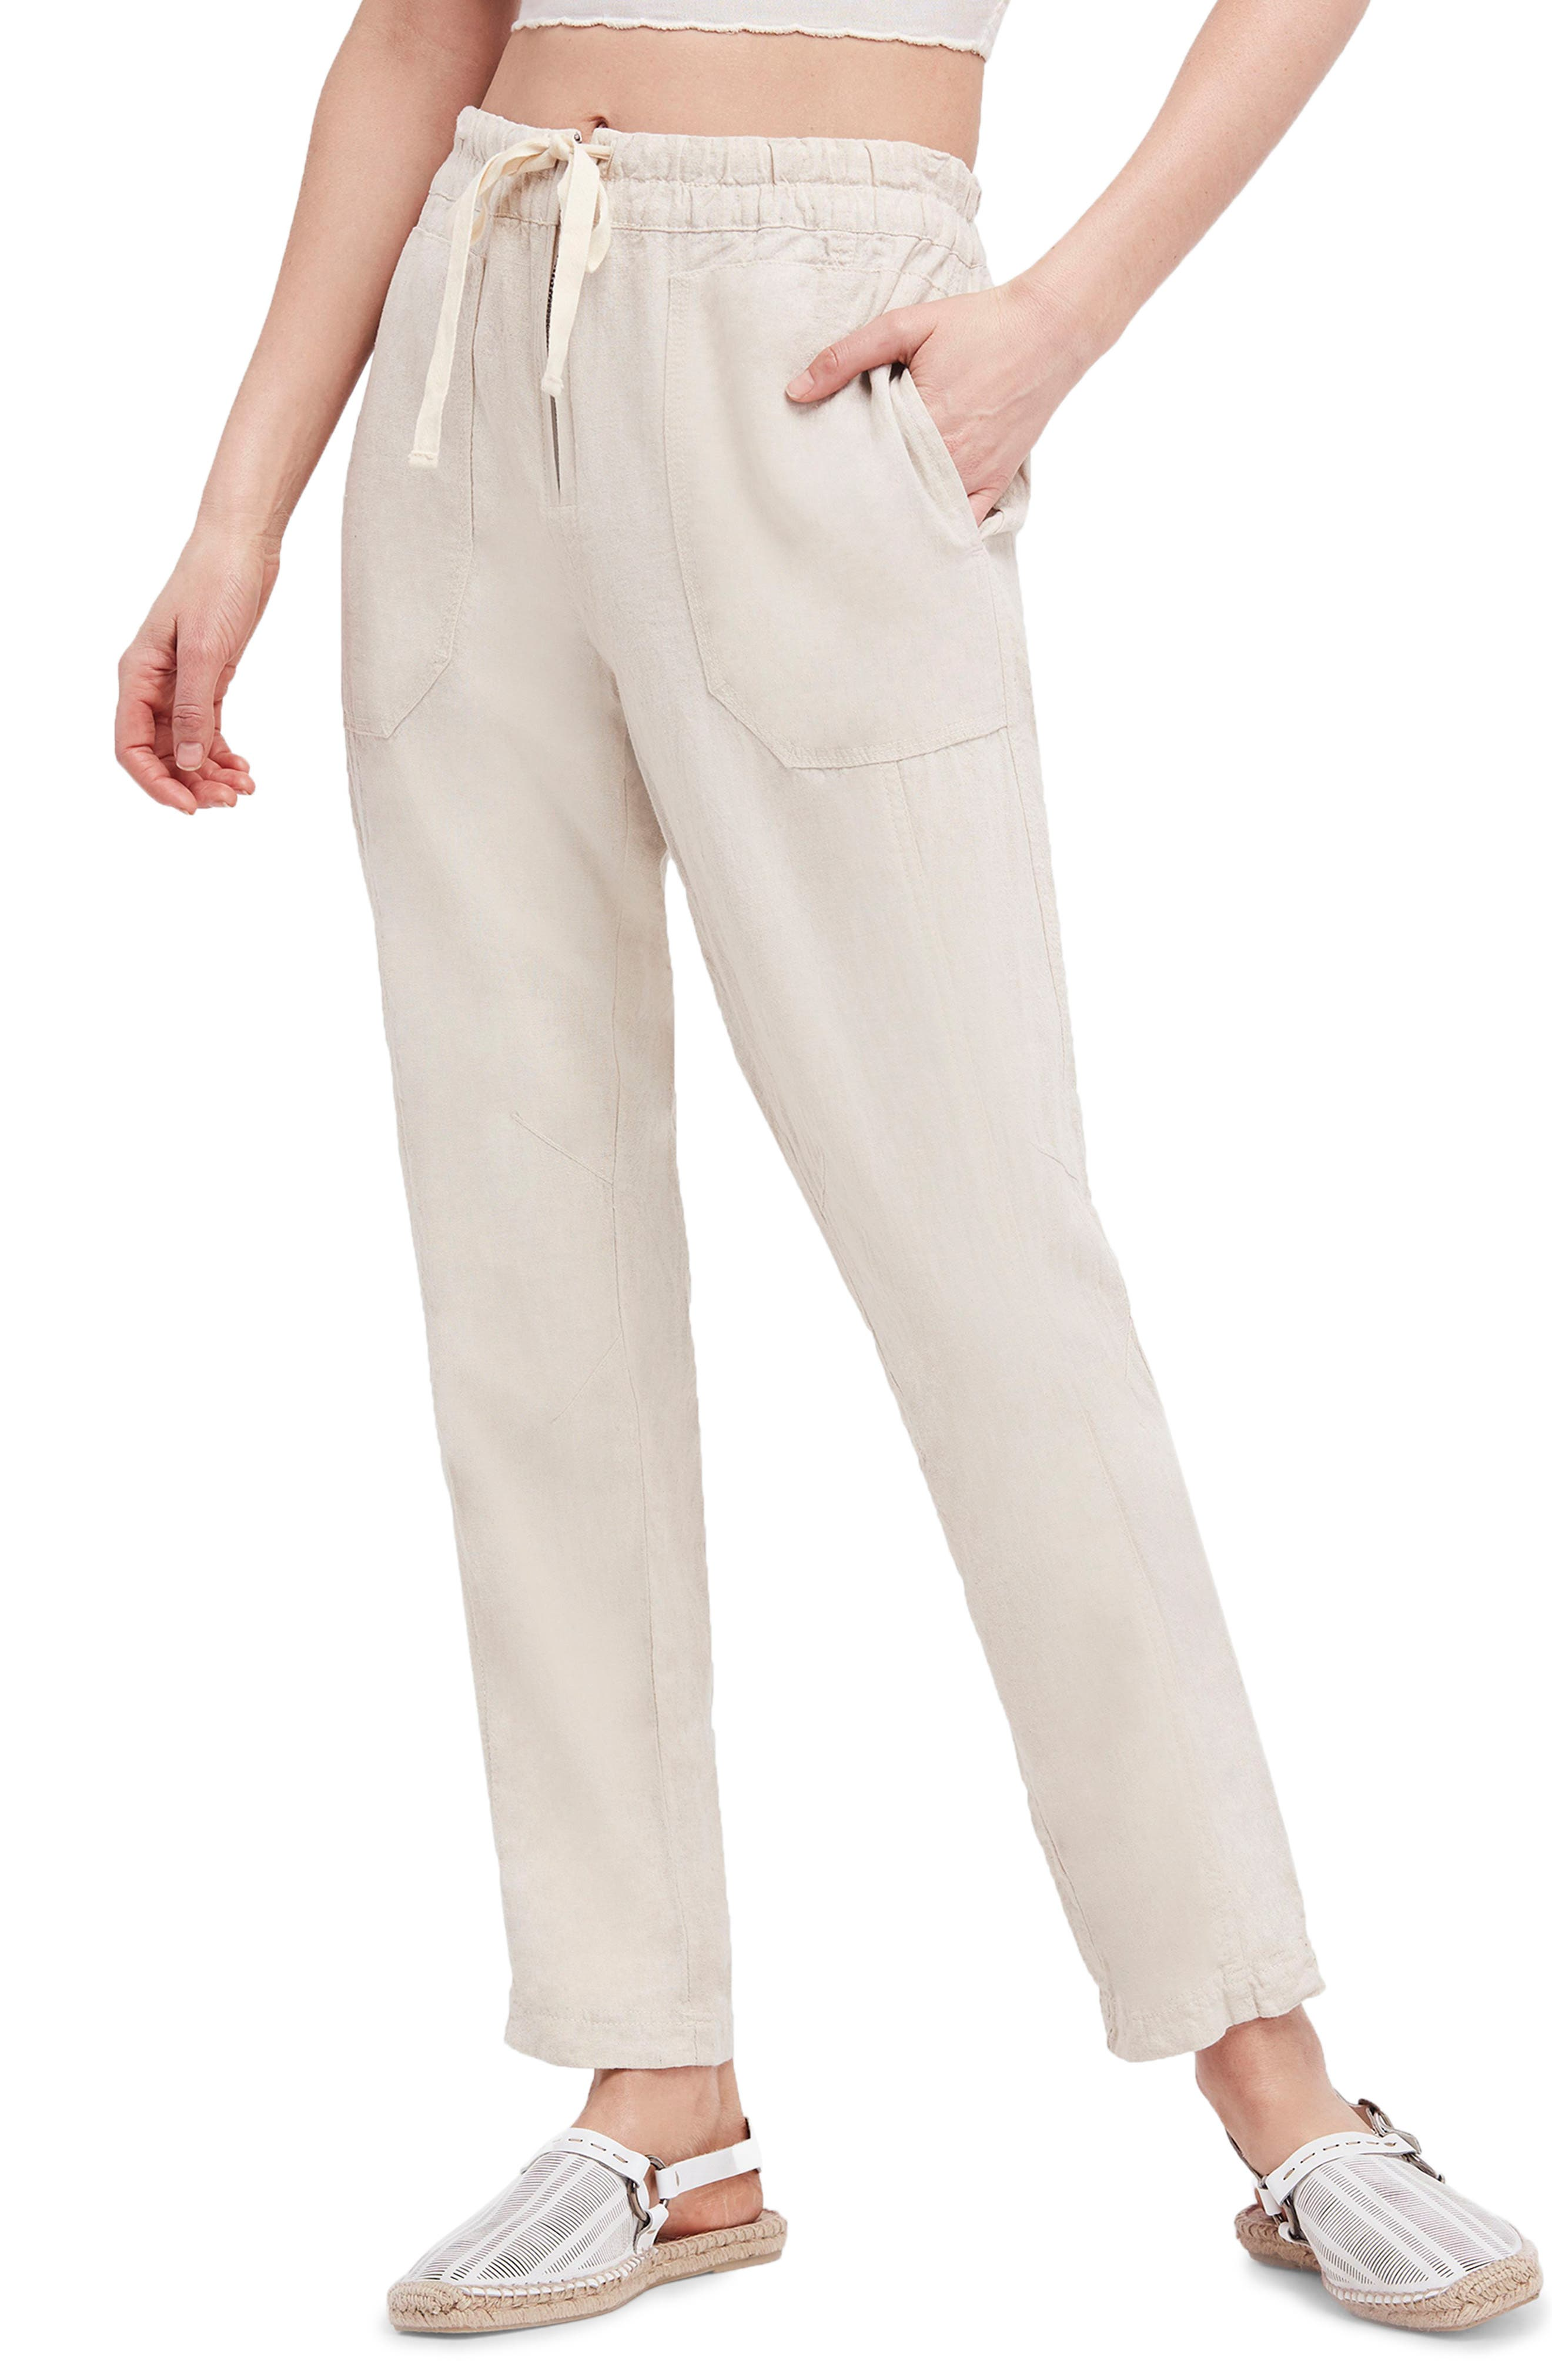 Palmer Skinny Utility Pants,                         Main,                         color, Ivory